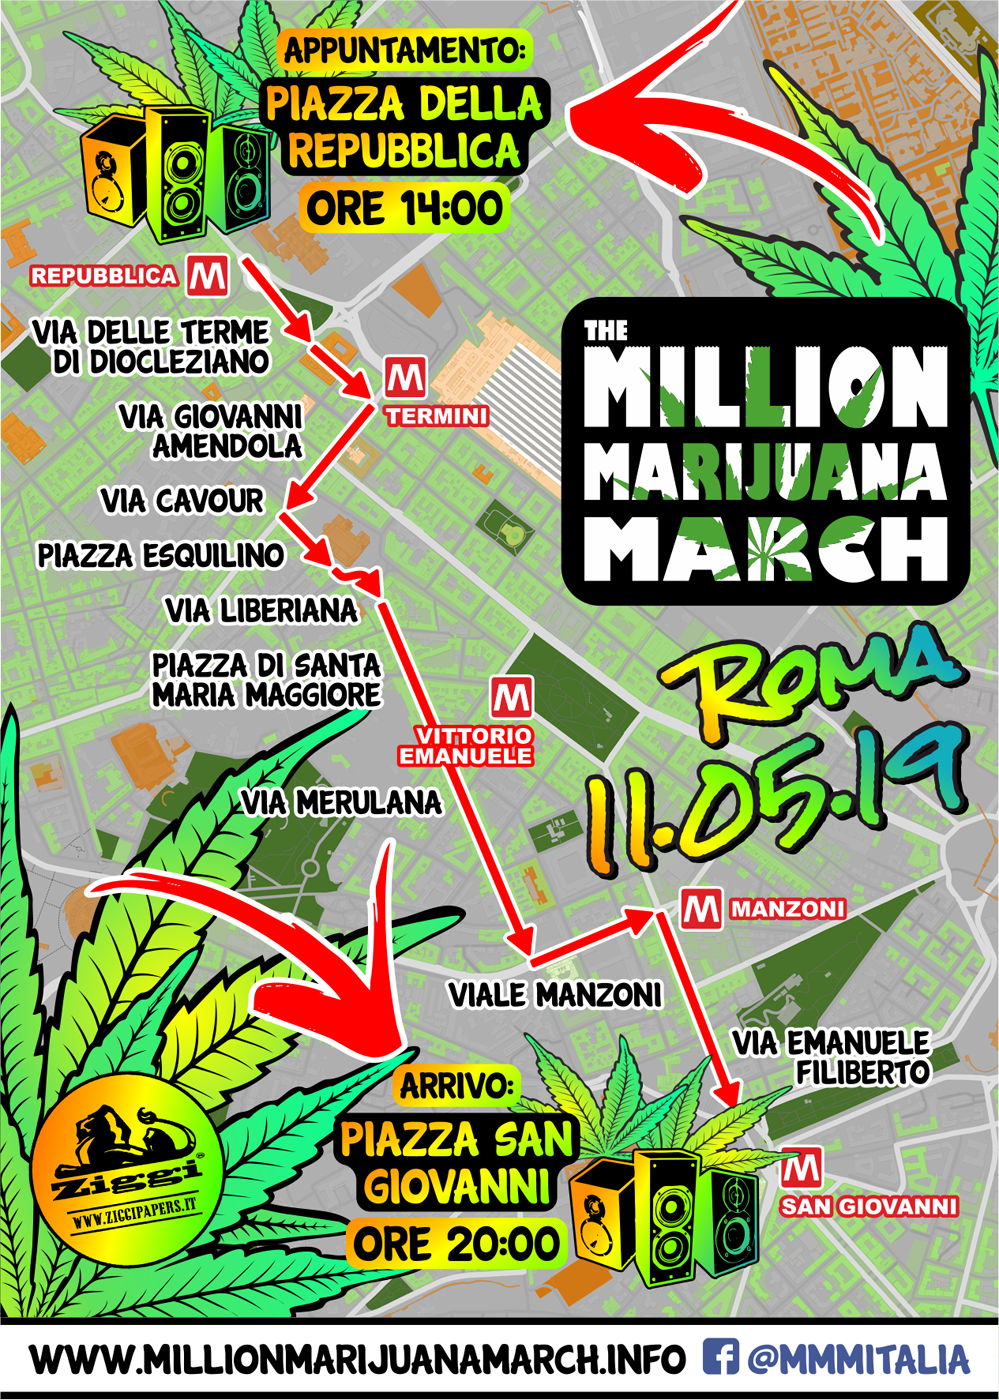 Percorso Million Marijuana March 2019 - Roma, sabato 11 Maggio